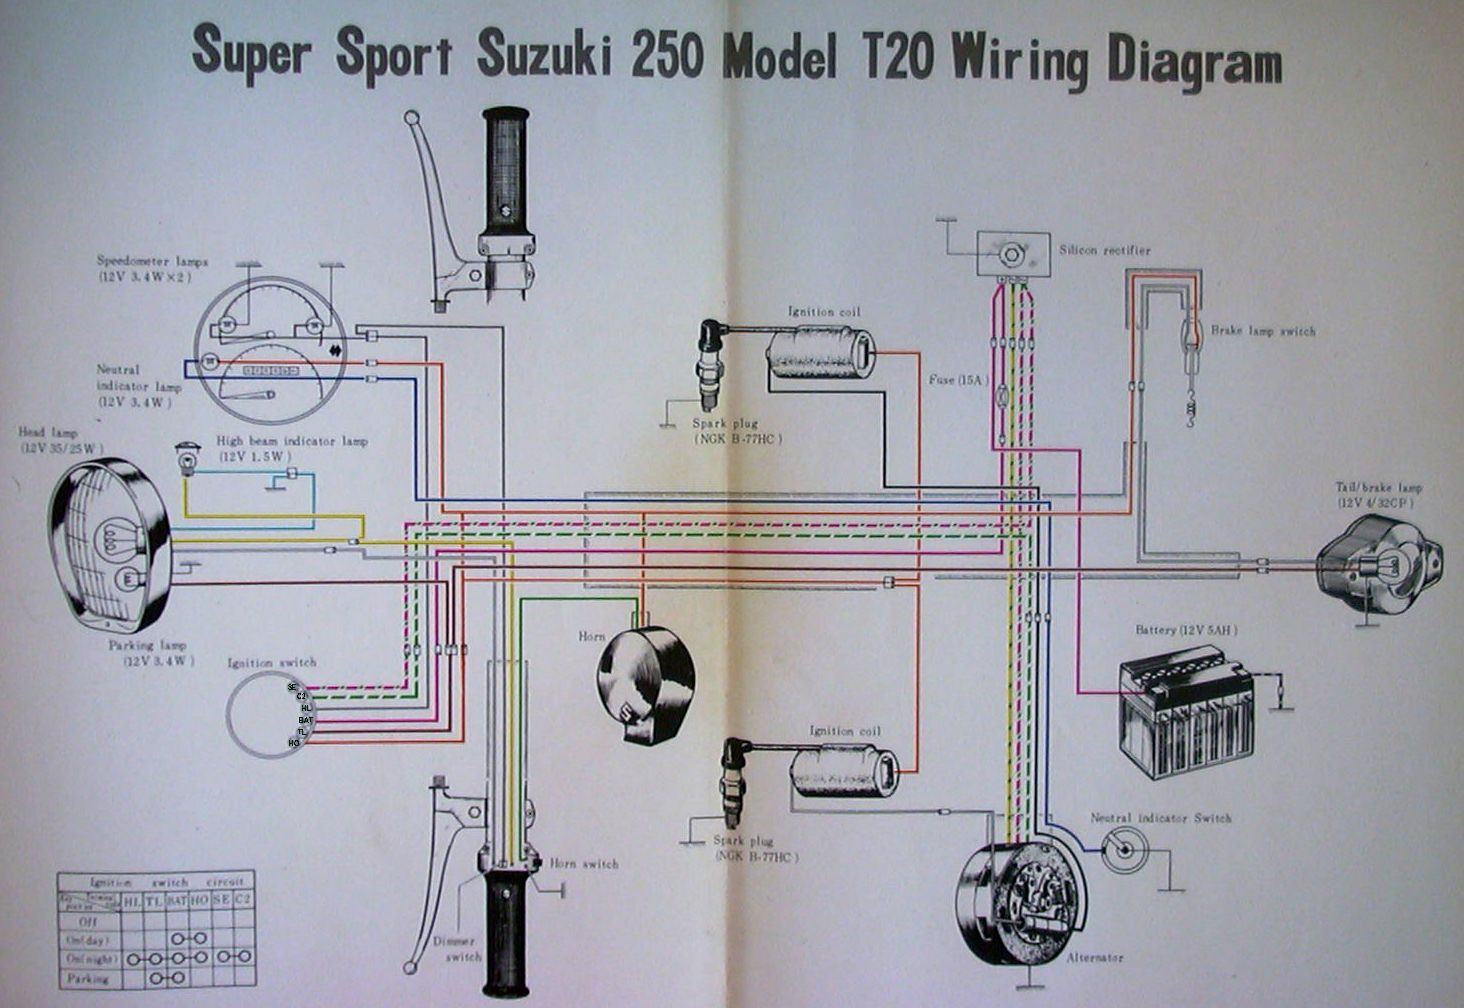 The Suzuki T20 'Super Six' X6 Wiring Diagram